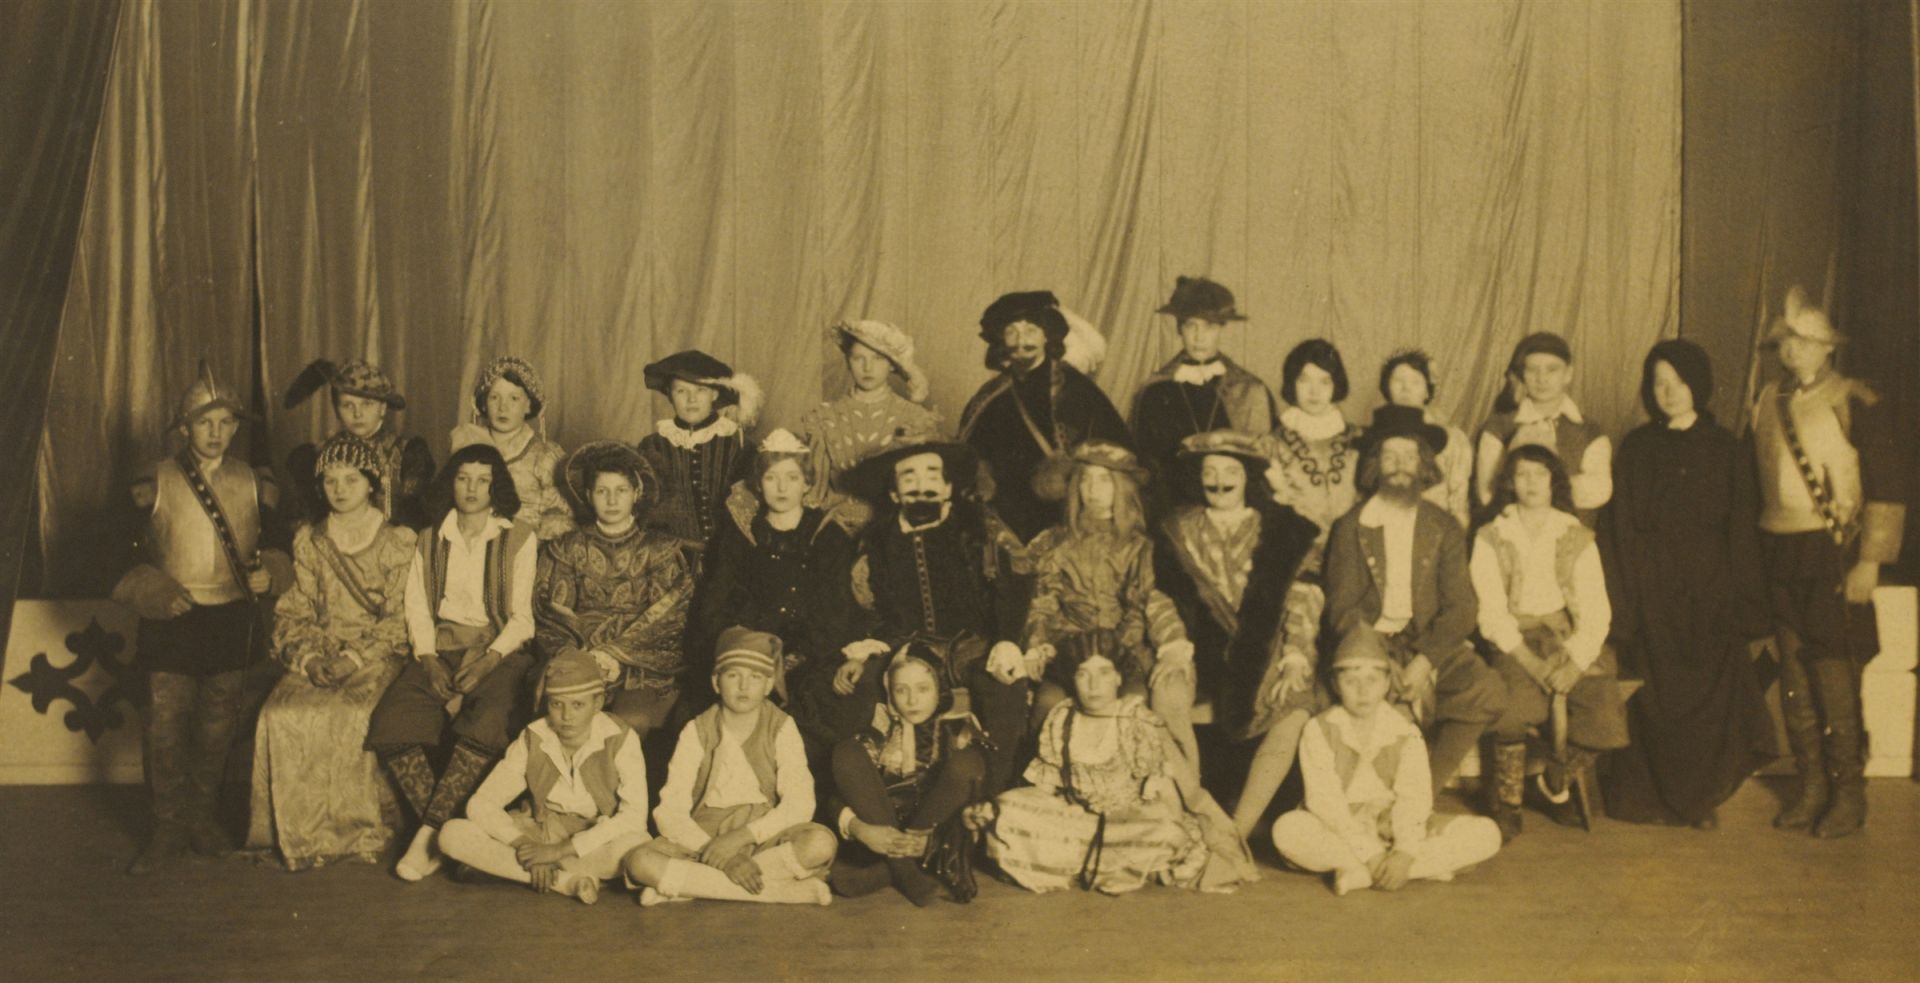 1927, Twelfth Night